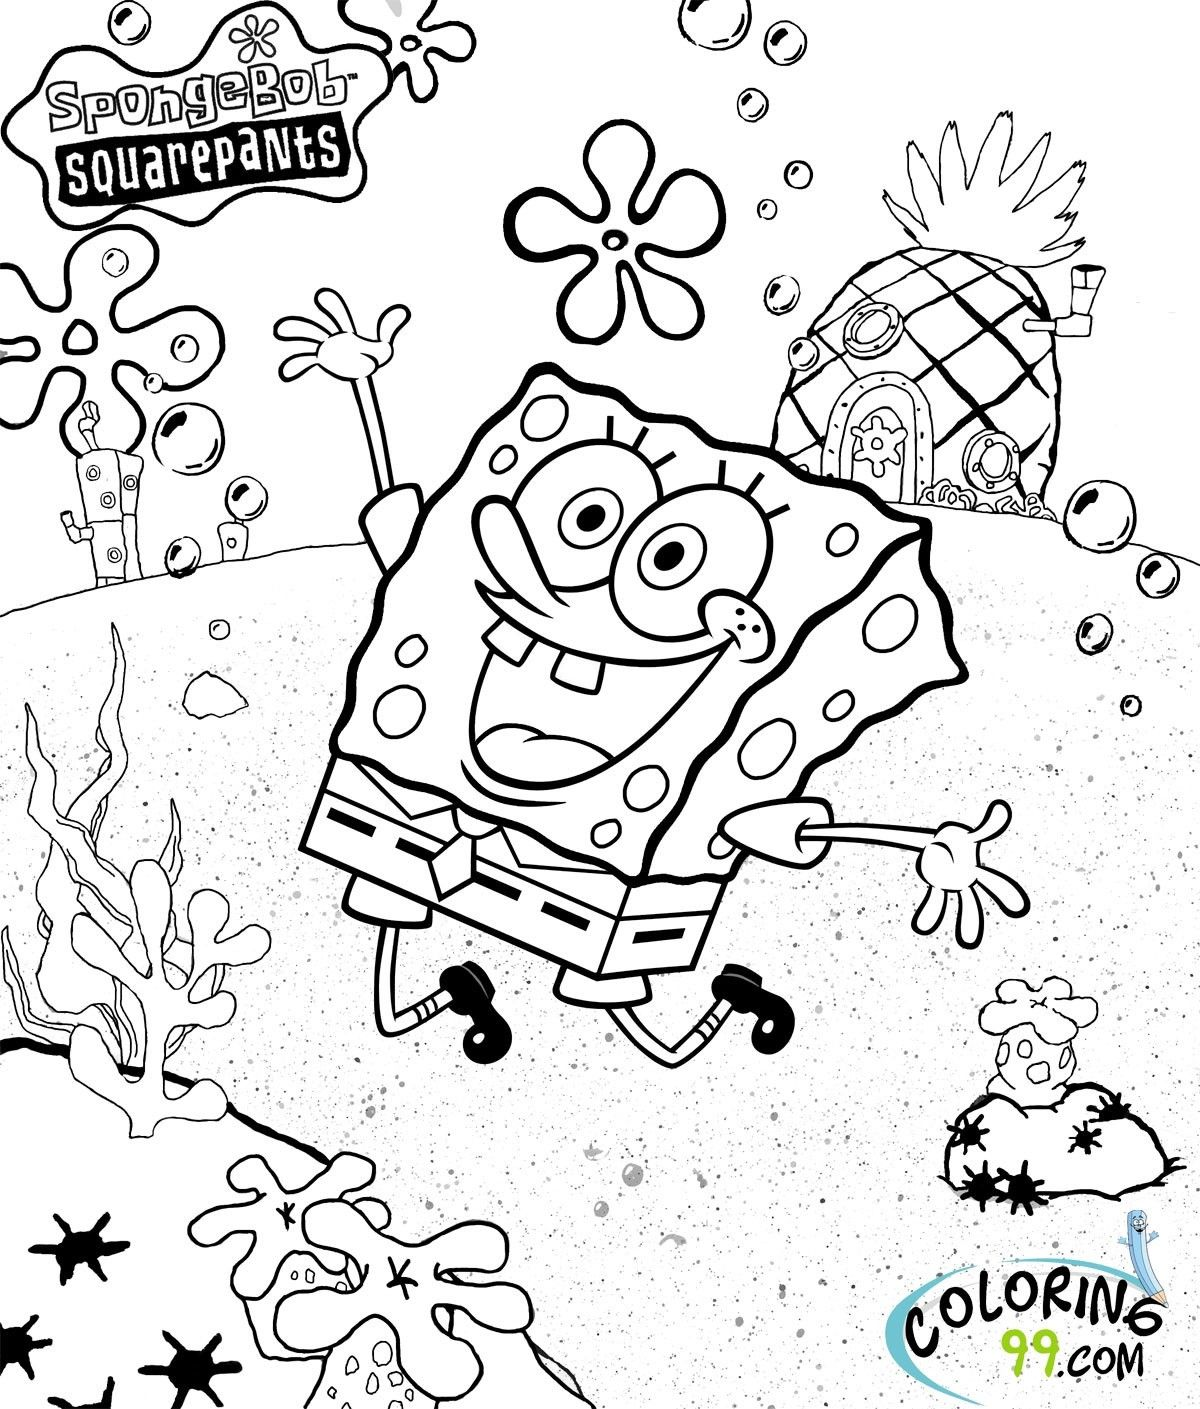 Spongebob Squarepants Easter Coloring Pages Through The Thousands Of Photos On Line Regardin Cartoon Coloring Pages Spongebob Coloring Designs Coloring Books